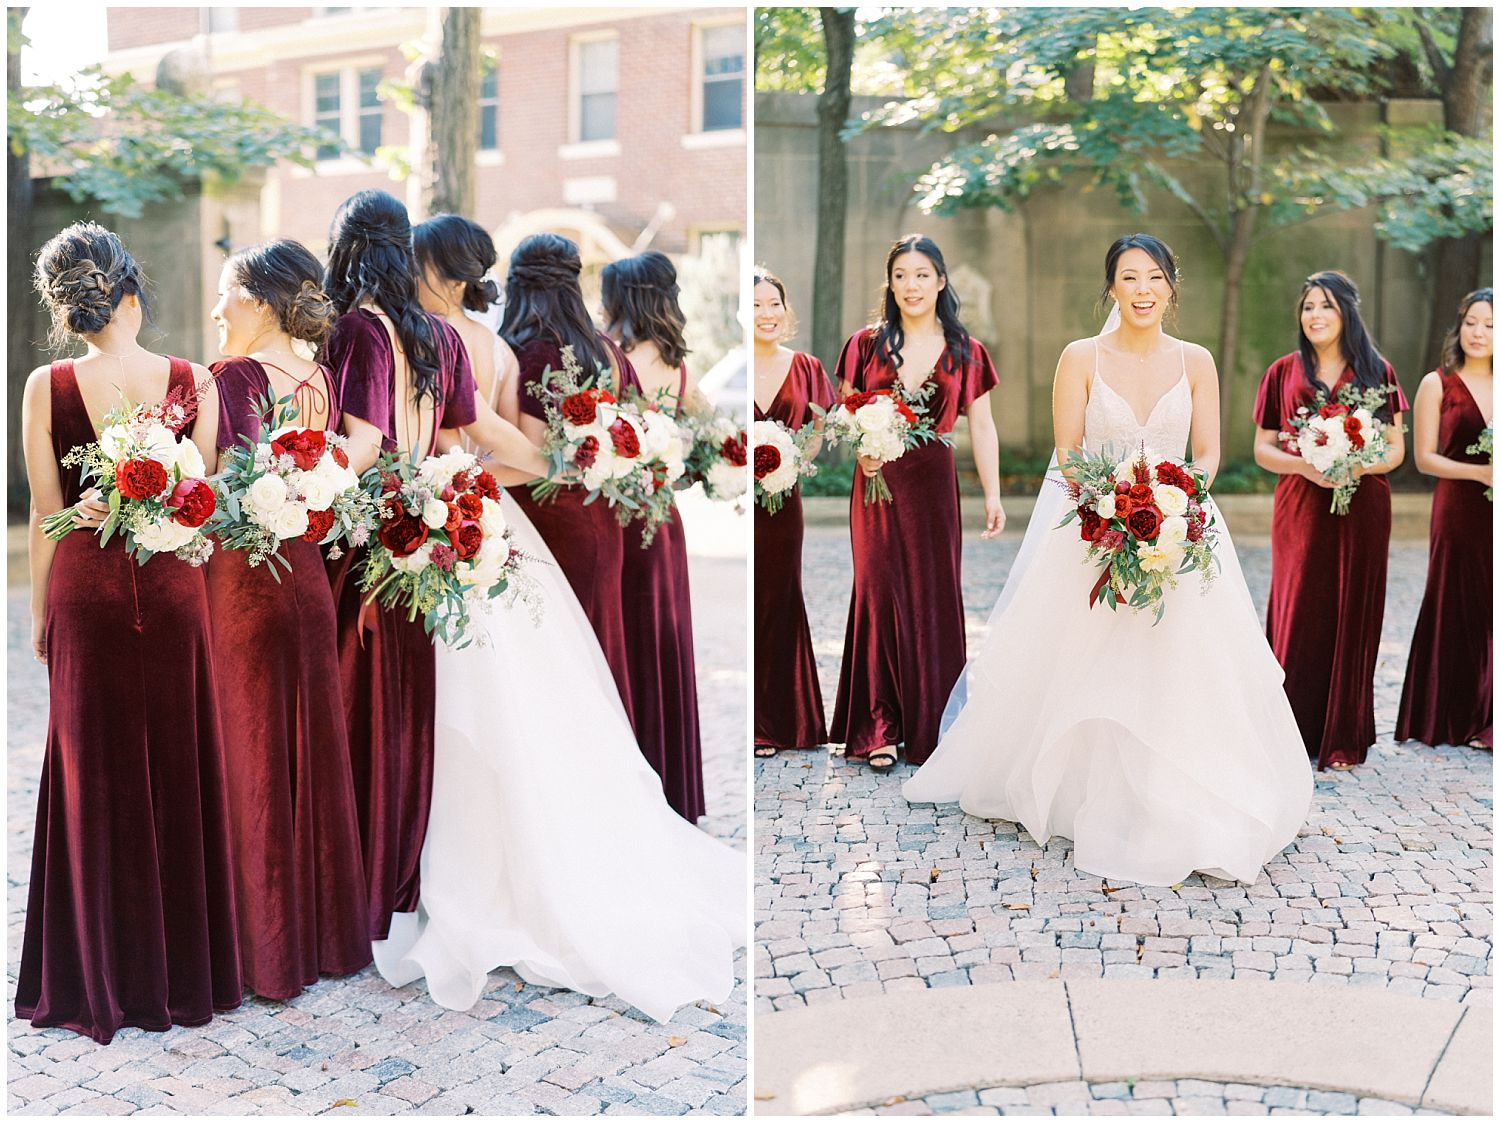 Meridan House wedding bridesmaids and groomsmen